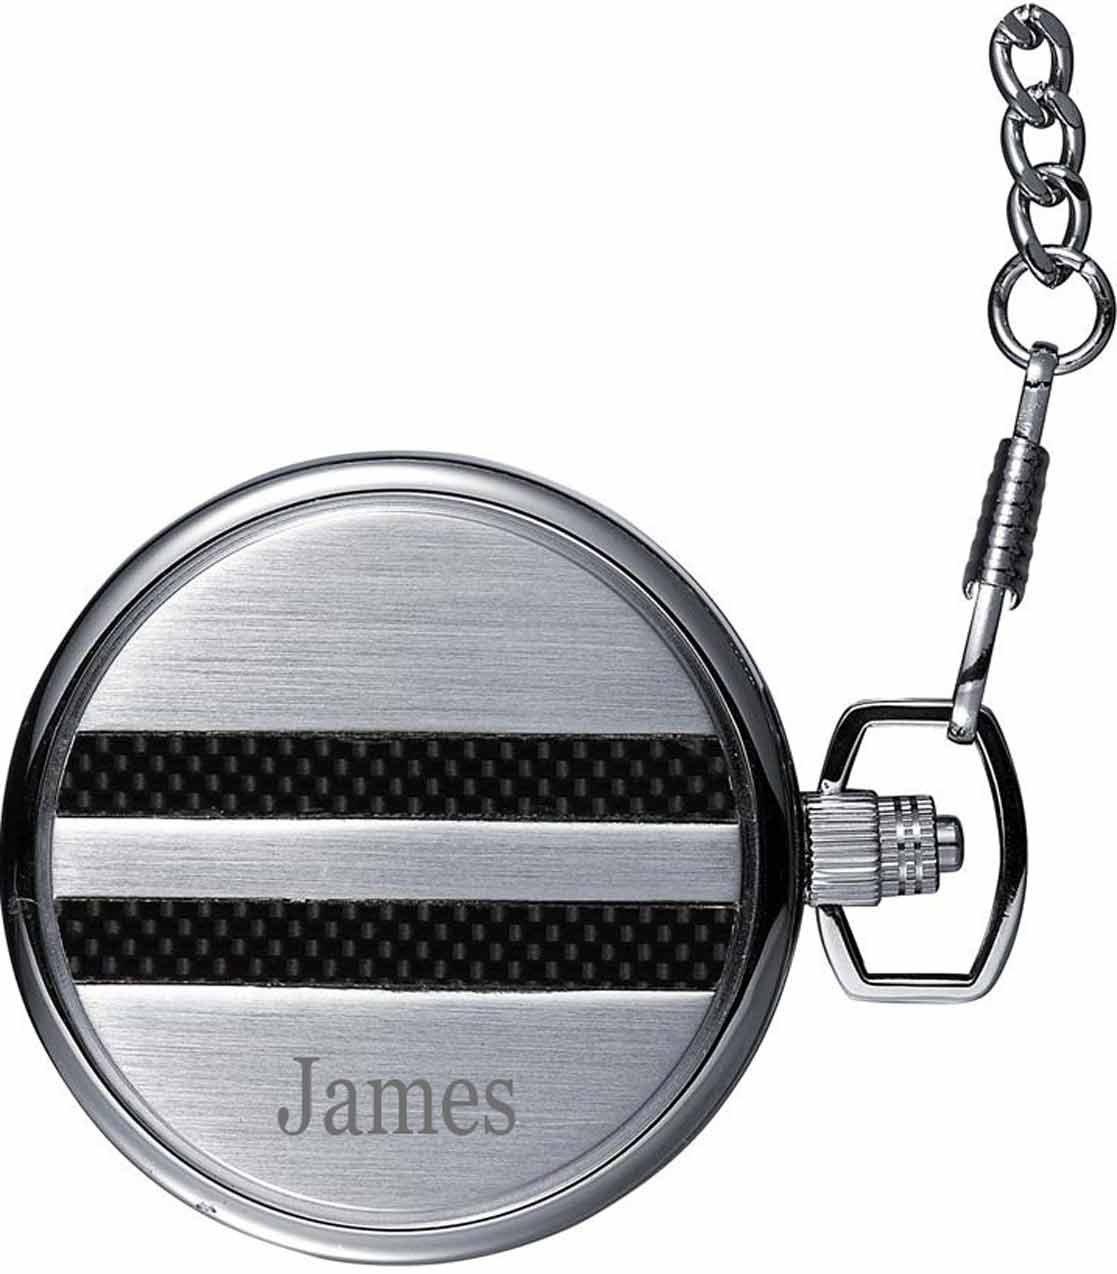 Personalized Visol Turbo White Dial Carbon Fiber Pocket Watch with free engraving